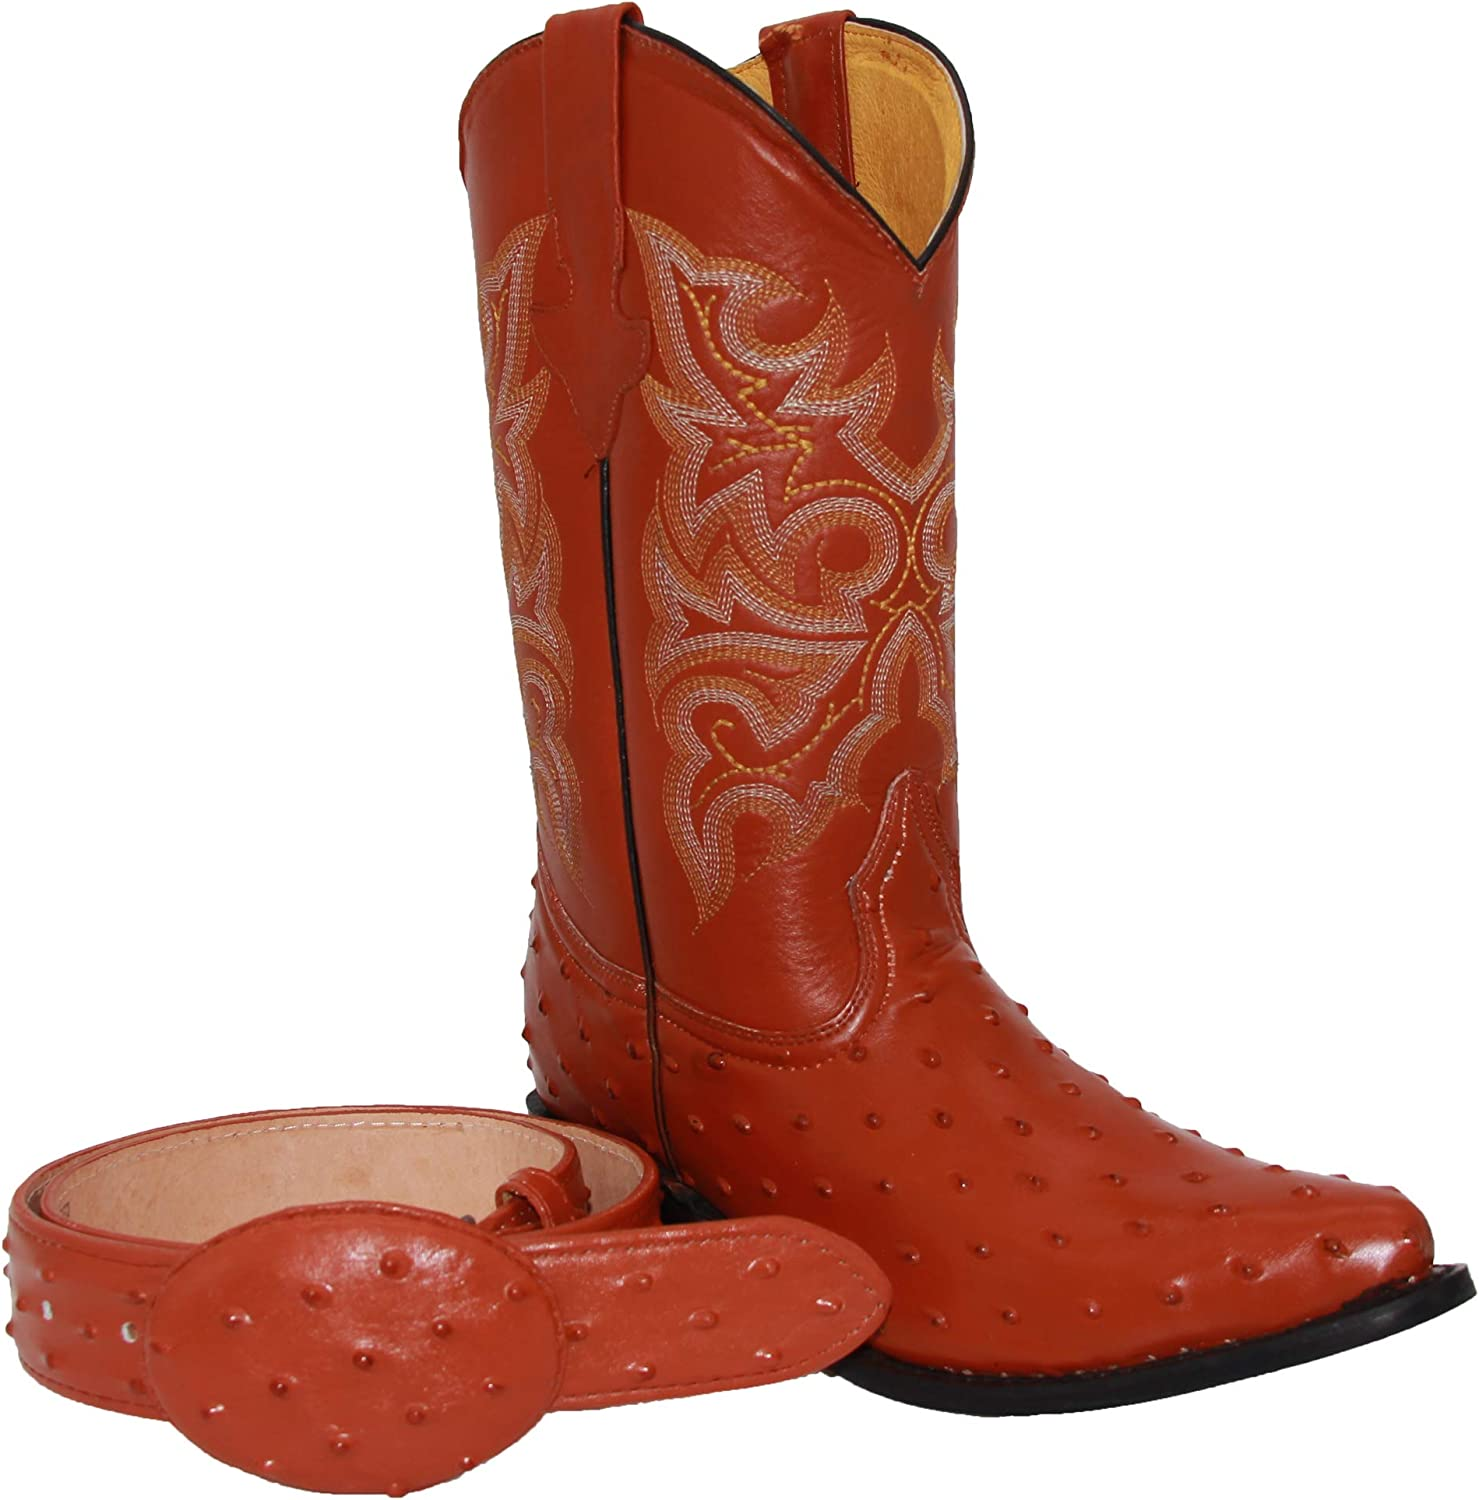 Western Shops Mens Leather Cowboy Boots Challenge the lowest price of Japan Embossed Quill P Opening large release sale Ostrich